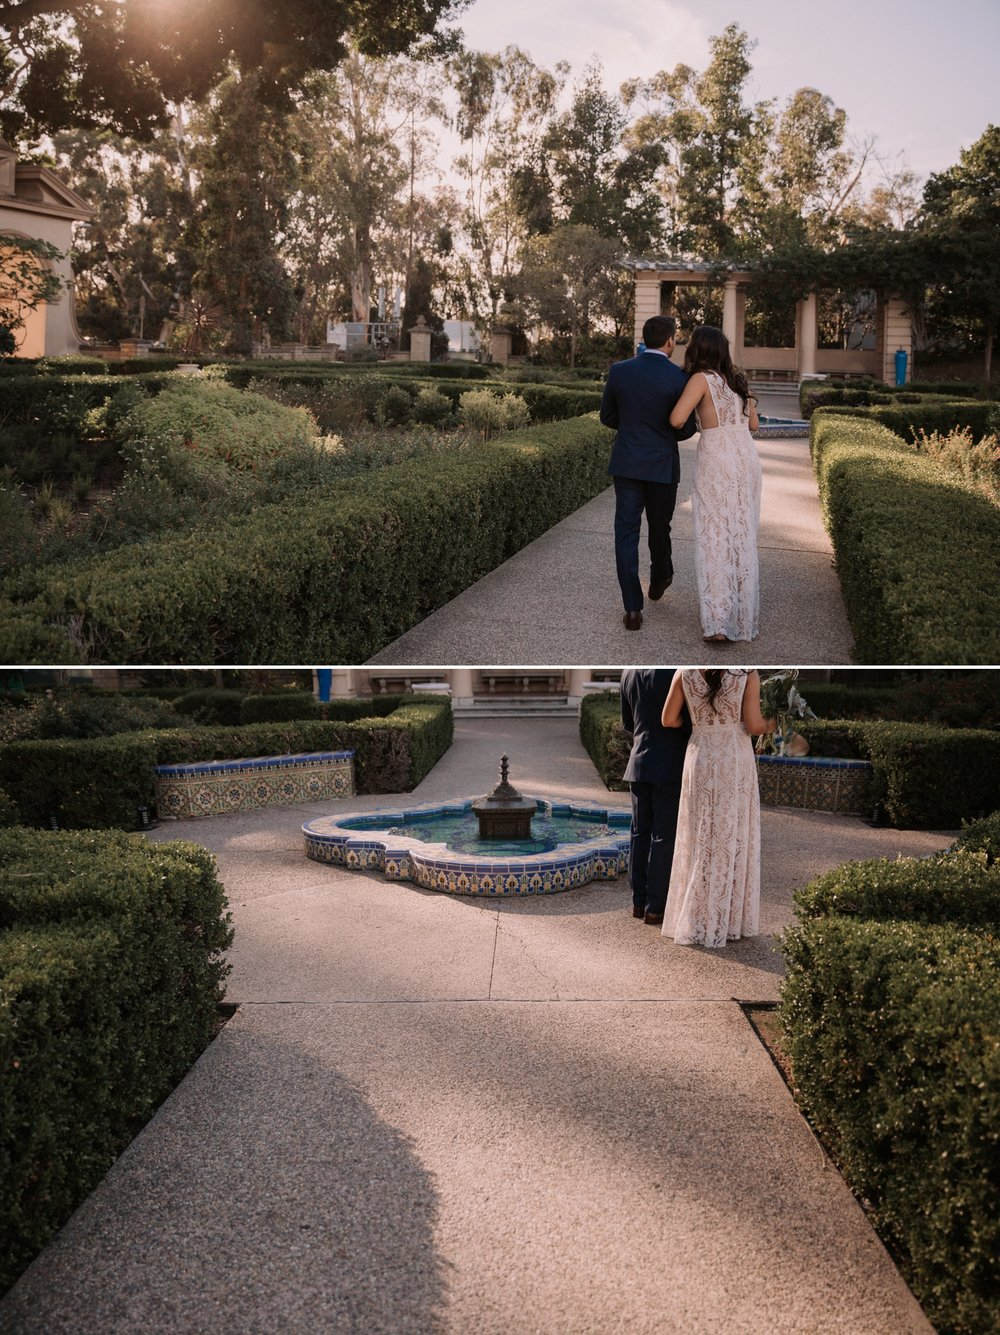 Wedding in Balboa park by San Diego photographer Paige Nelson